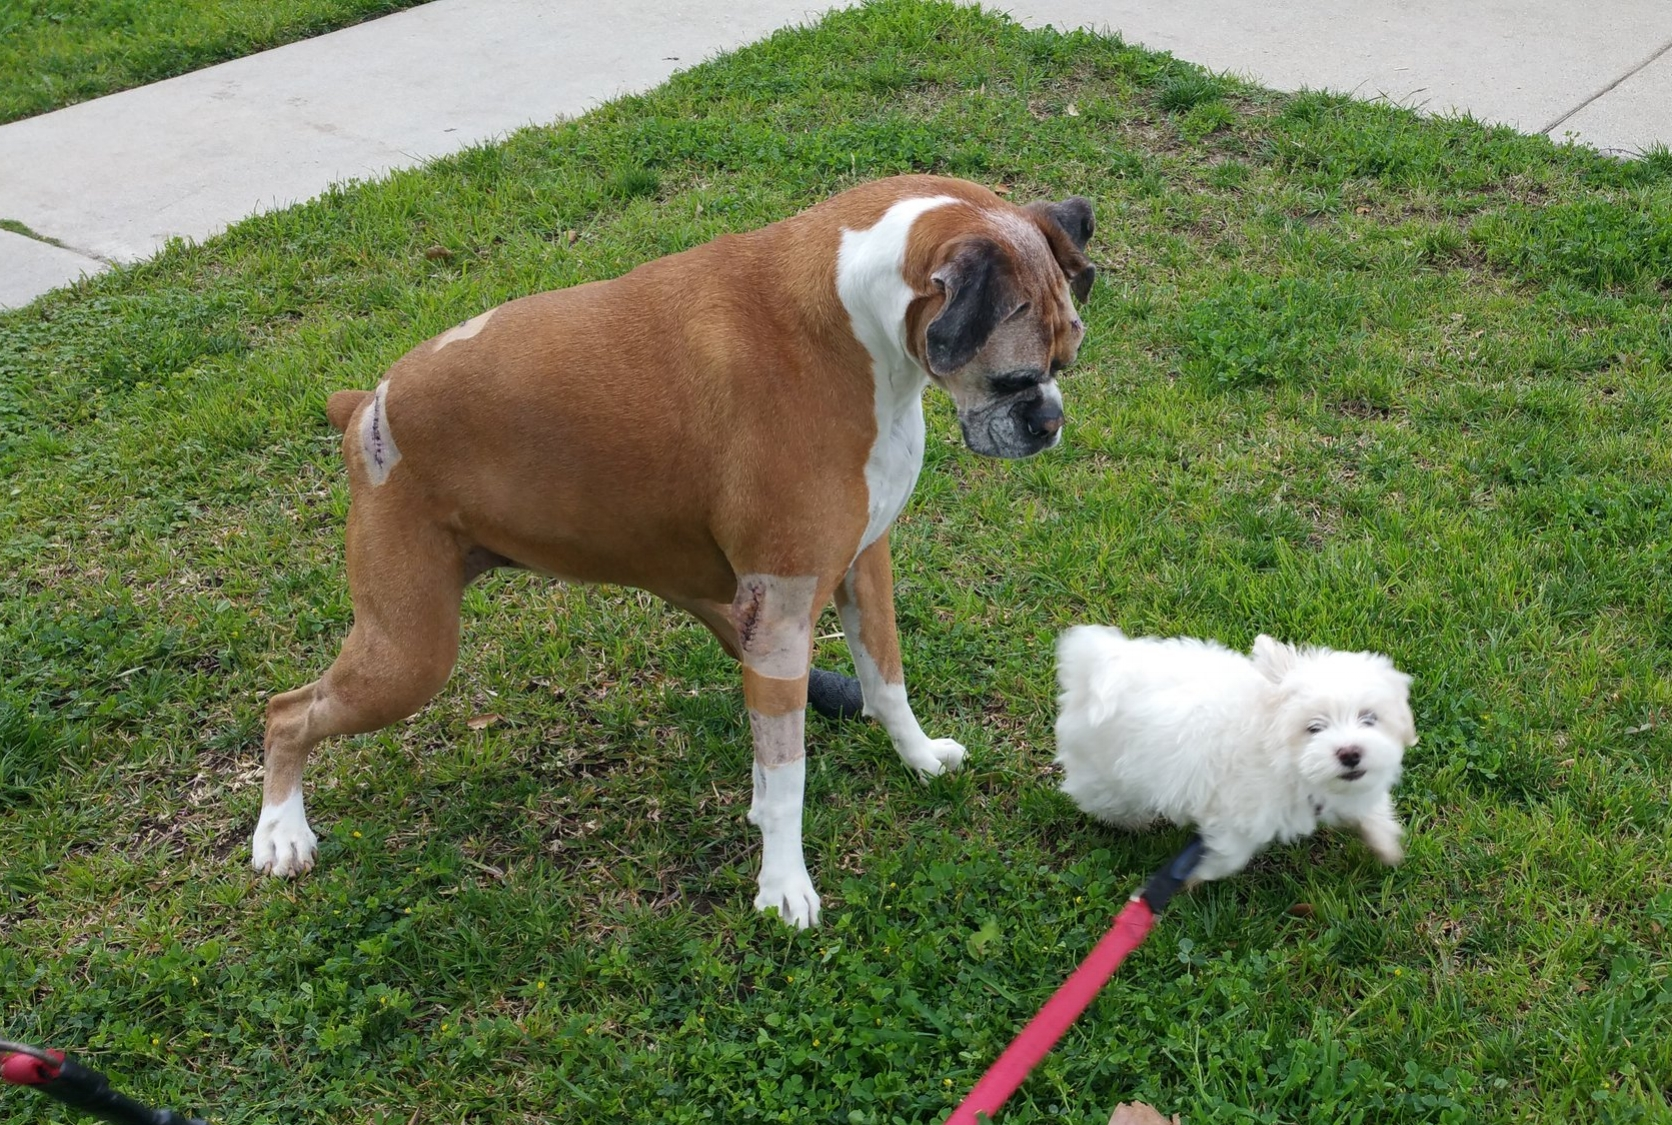 Tink - 10.5 year old Boxer Mix from West Hills, CA in need of a rear-end wheelchair. $400Donations Received: $00.00 (Updated 9/29/2018)